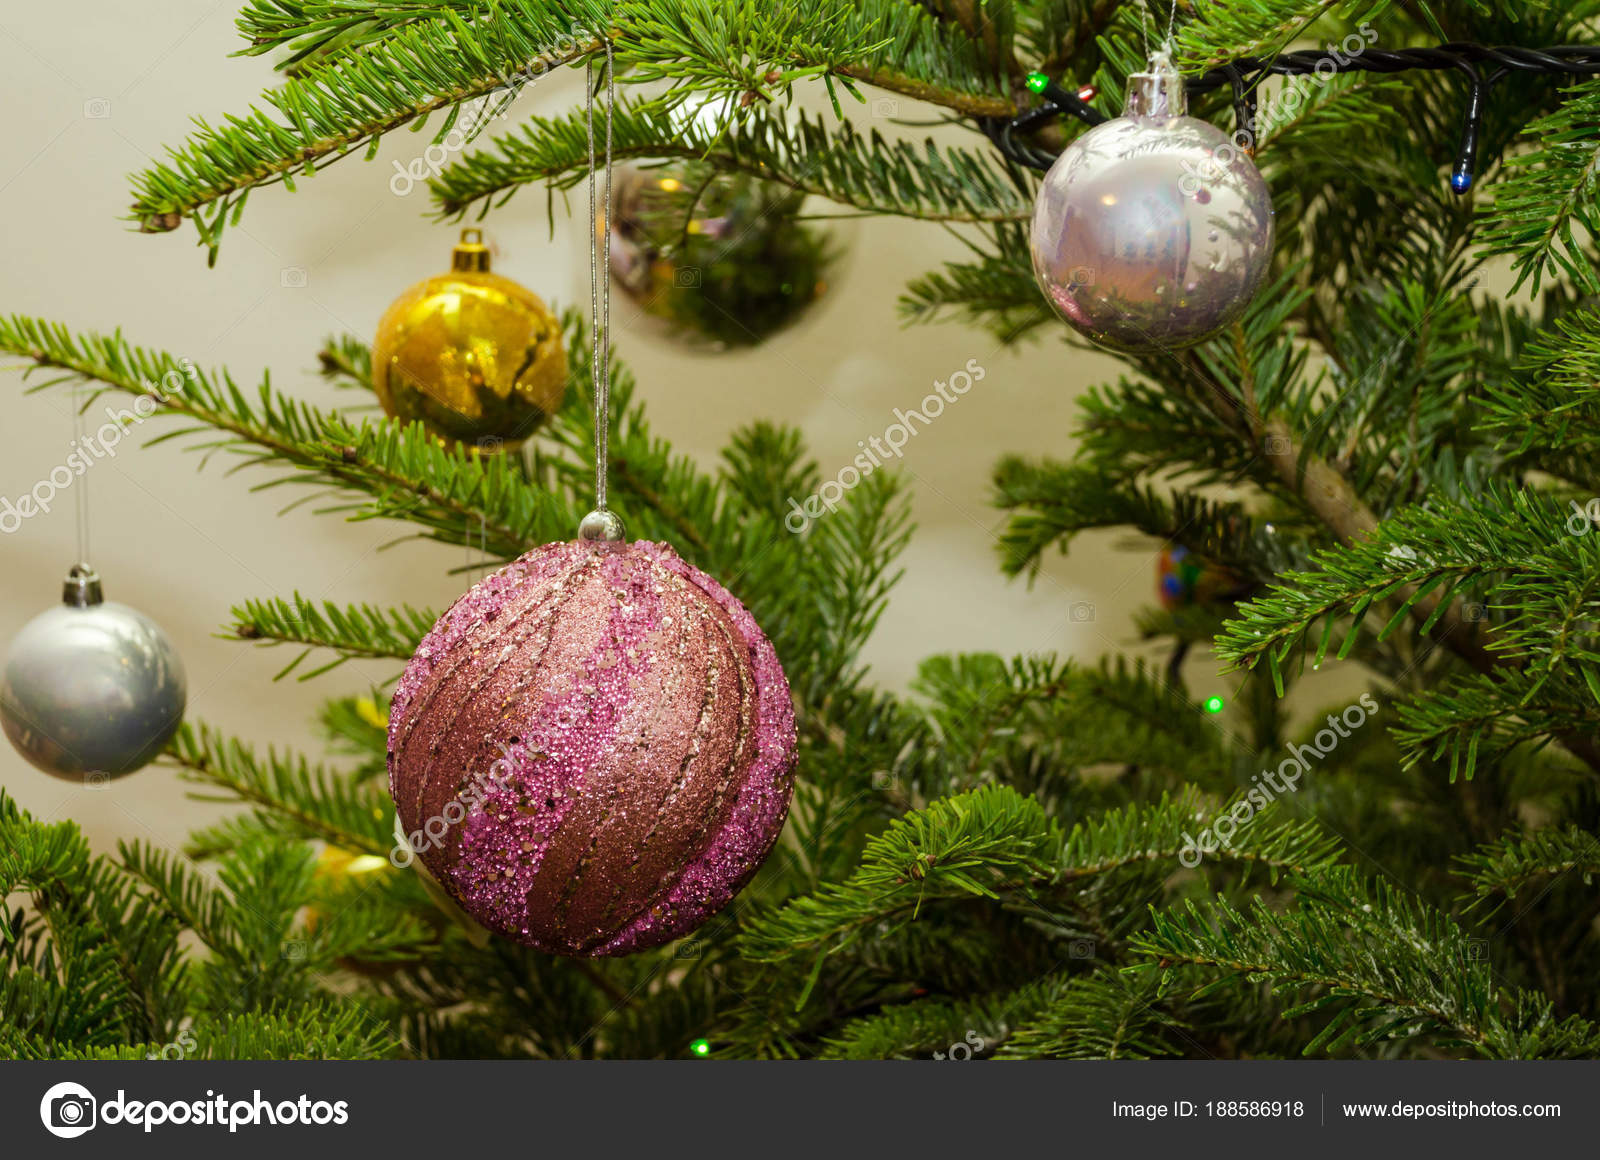 Purple And Gold Christmas Tree Decorations Close Up Of Purple Gold And Gray Christmas Tree Decorations Stock Photo C Milicaphoto 188586918